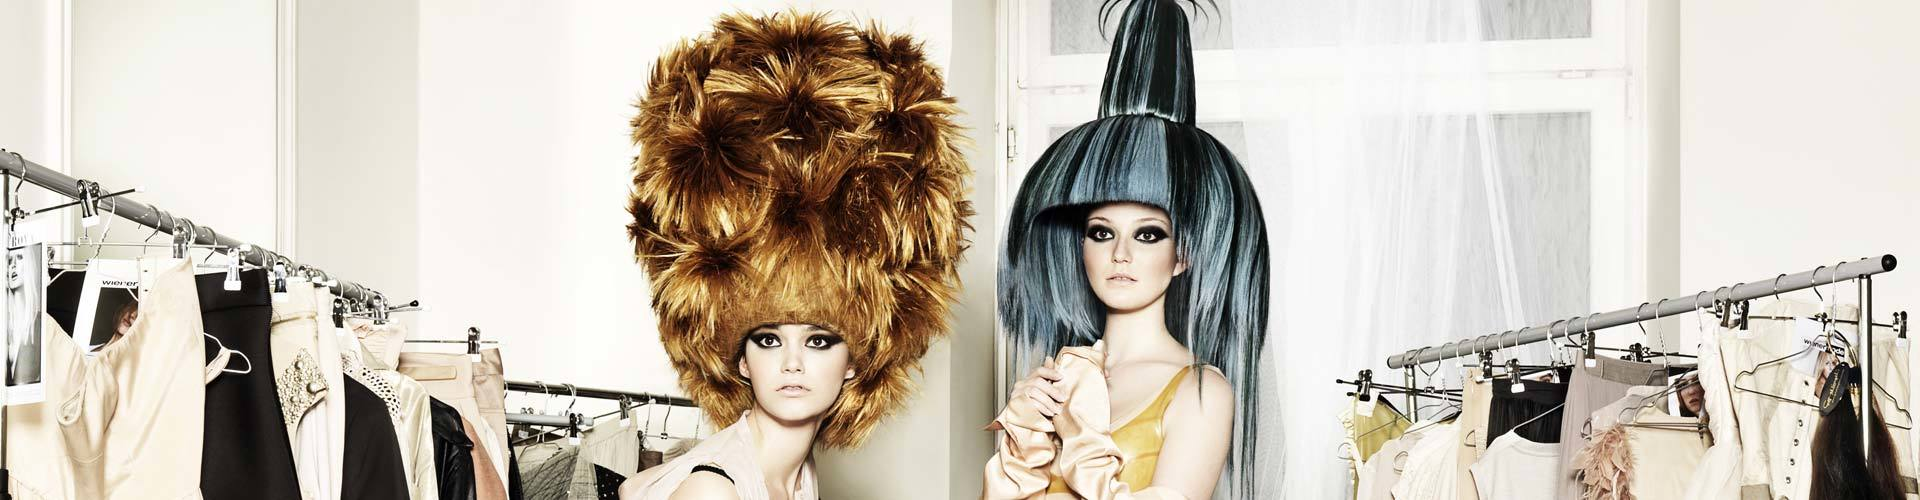 Big Hair bei Germany's next Topmodel (© Great Lengths)